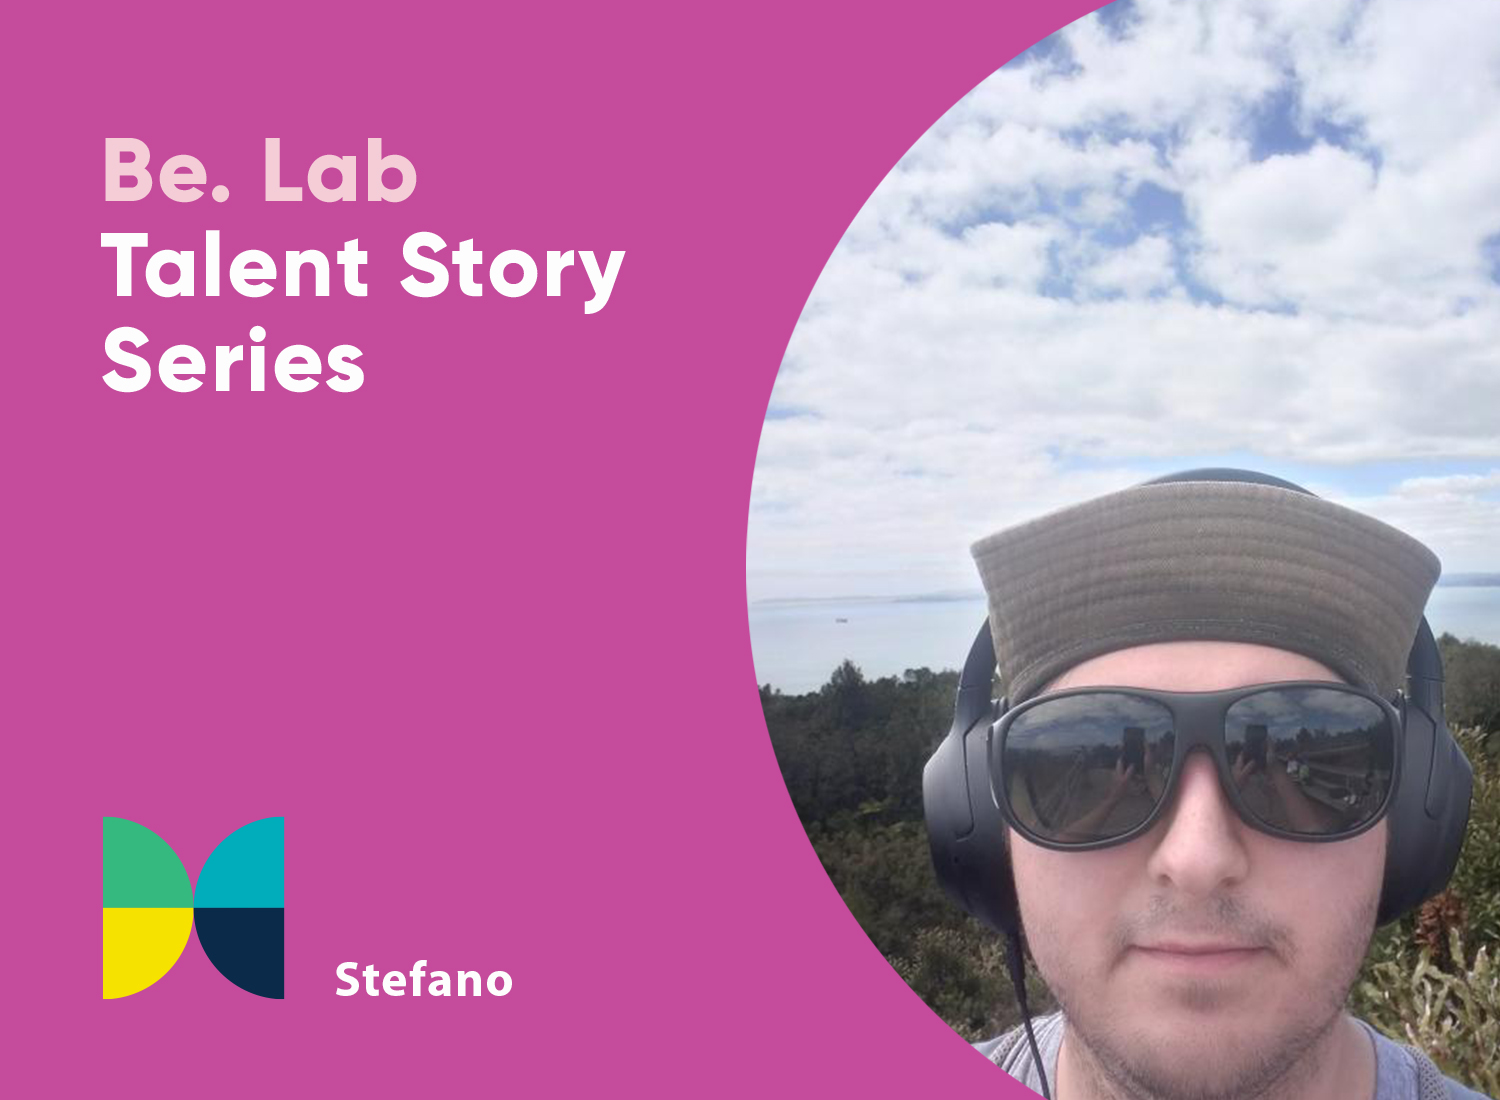 Pink background with colourful butterfly icon. Text reads: Be. Lab Talent Story Series, Stefano. An close up image of a man wearing a hat, headphones and sunglasses. In the background is a forest, the ocean, and a blue cloud-filled sky.